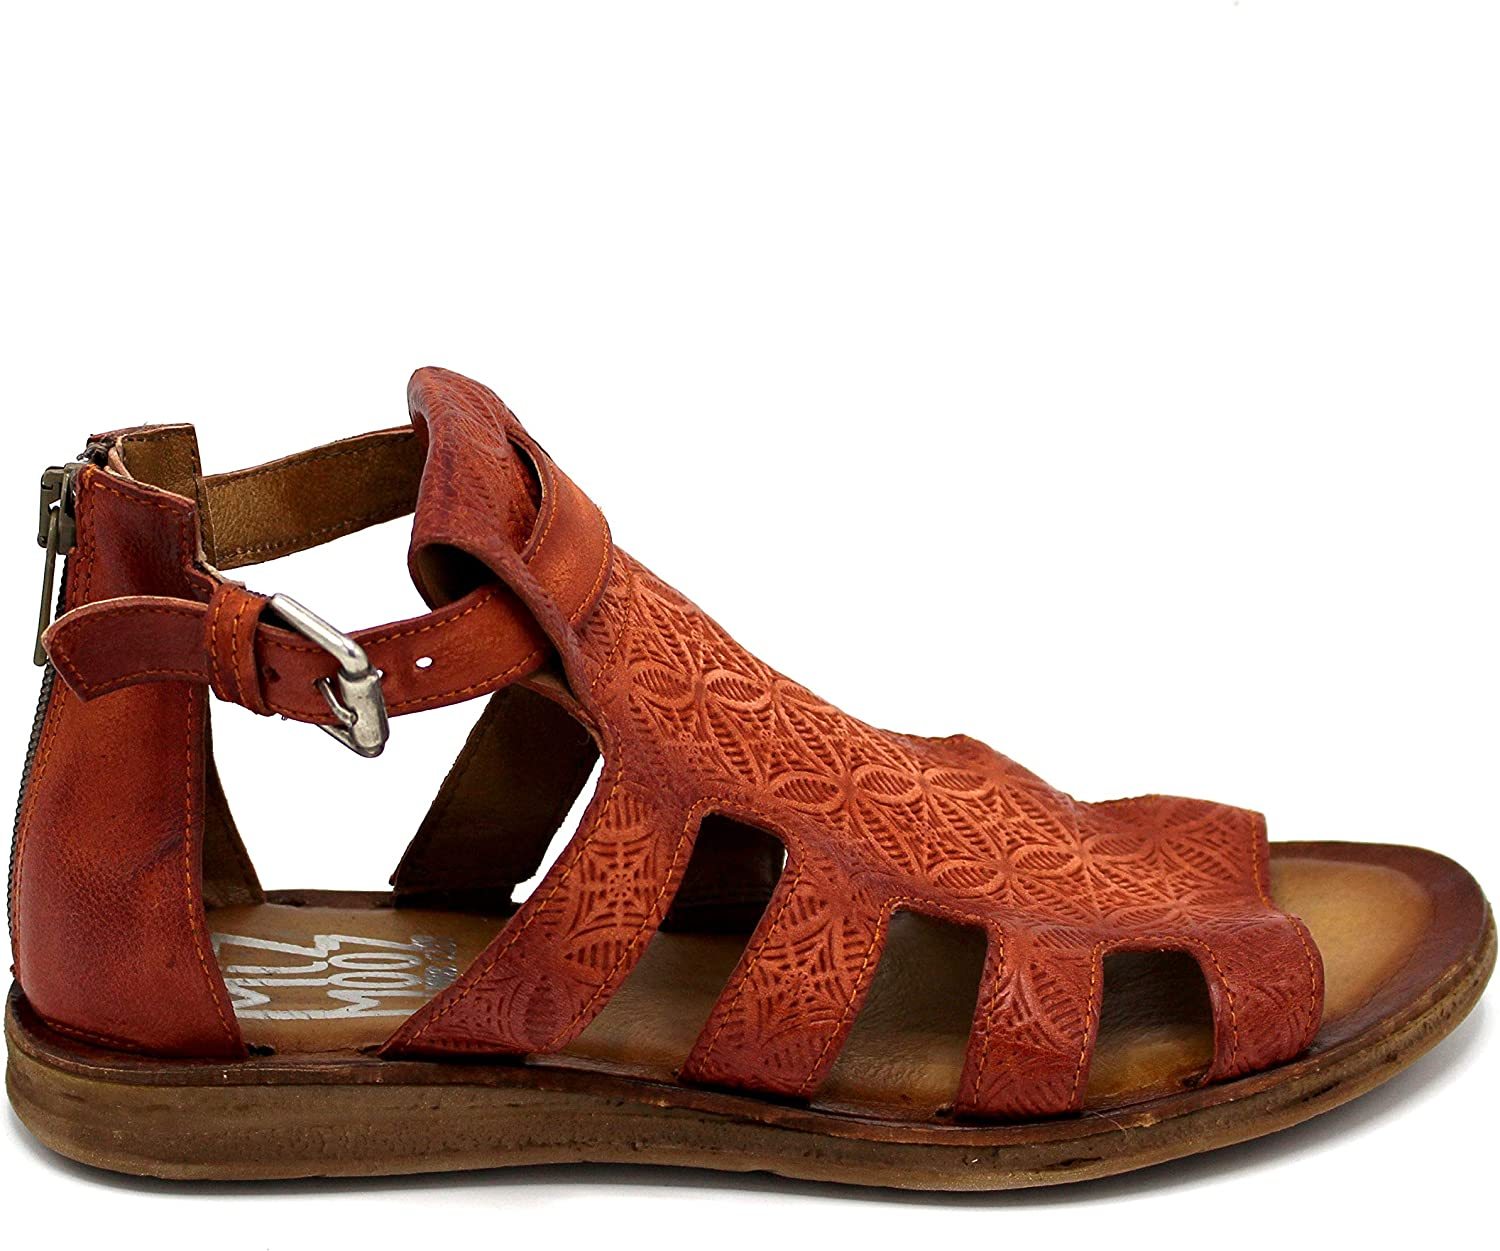 Miz Mooz Women's Fuji in Rust